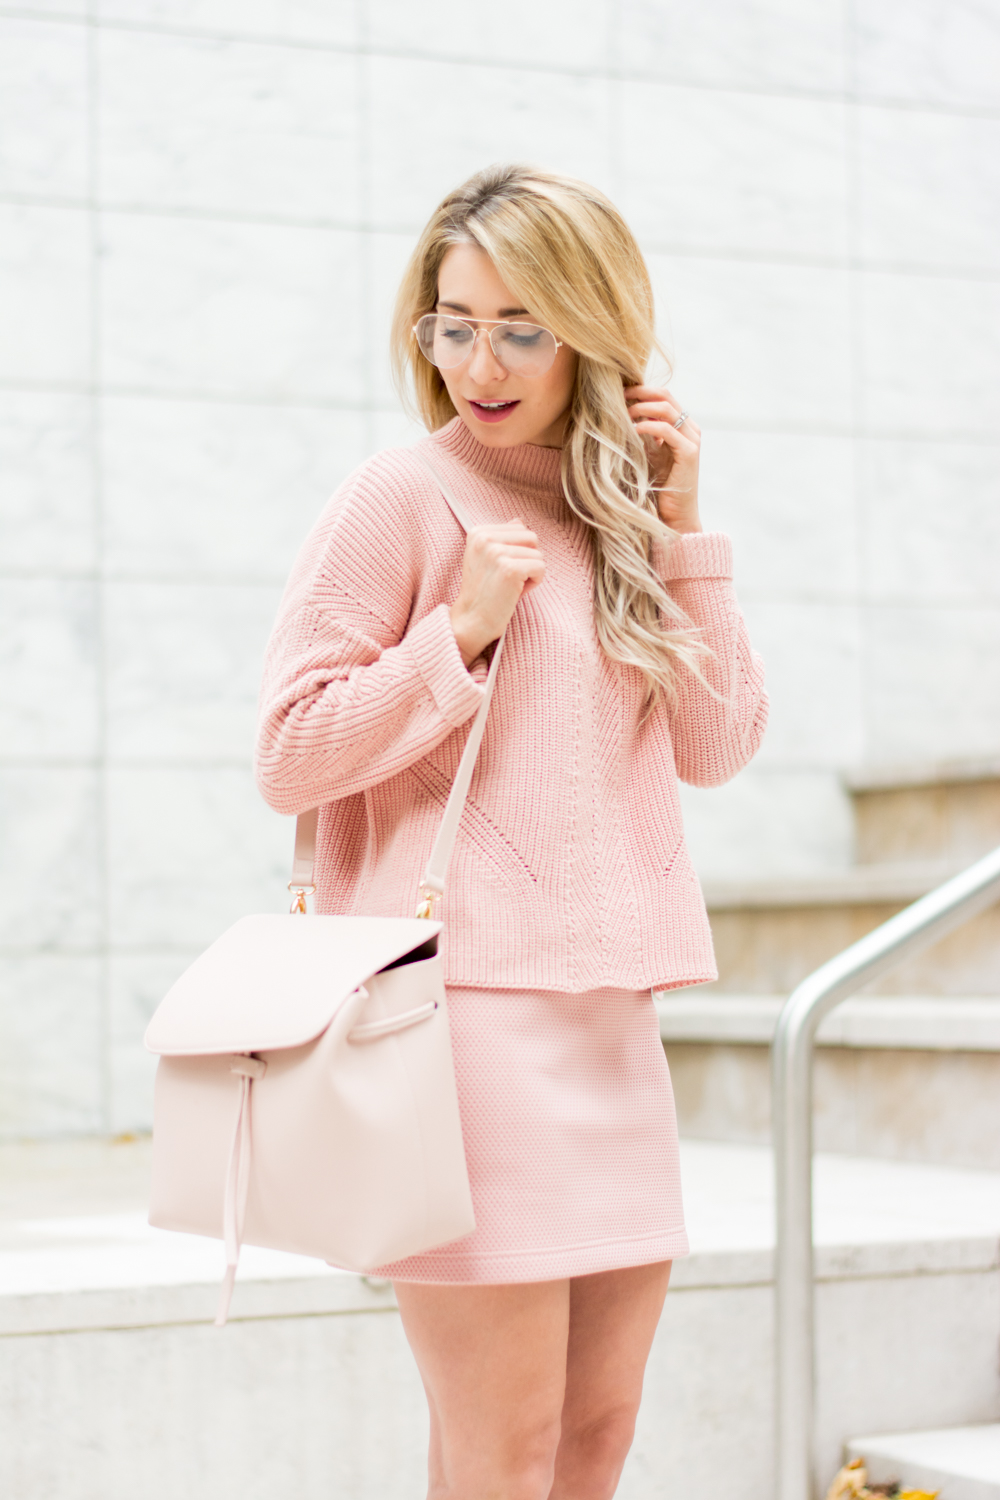 joelle-anello-la-petite-noob-pink-sweater-pink-skirt-blush-topshop-outfit.jpg